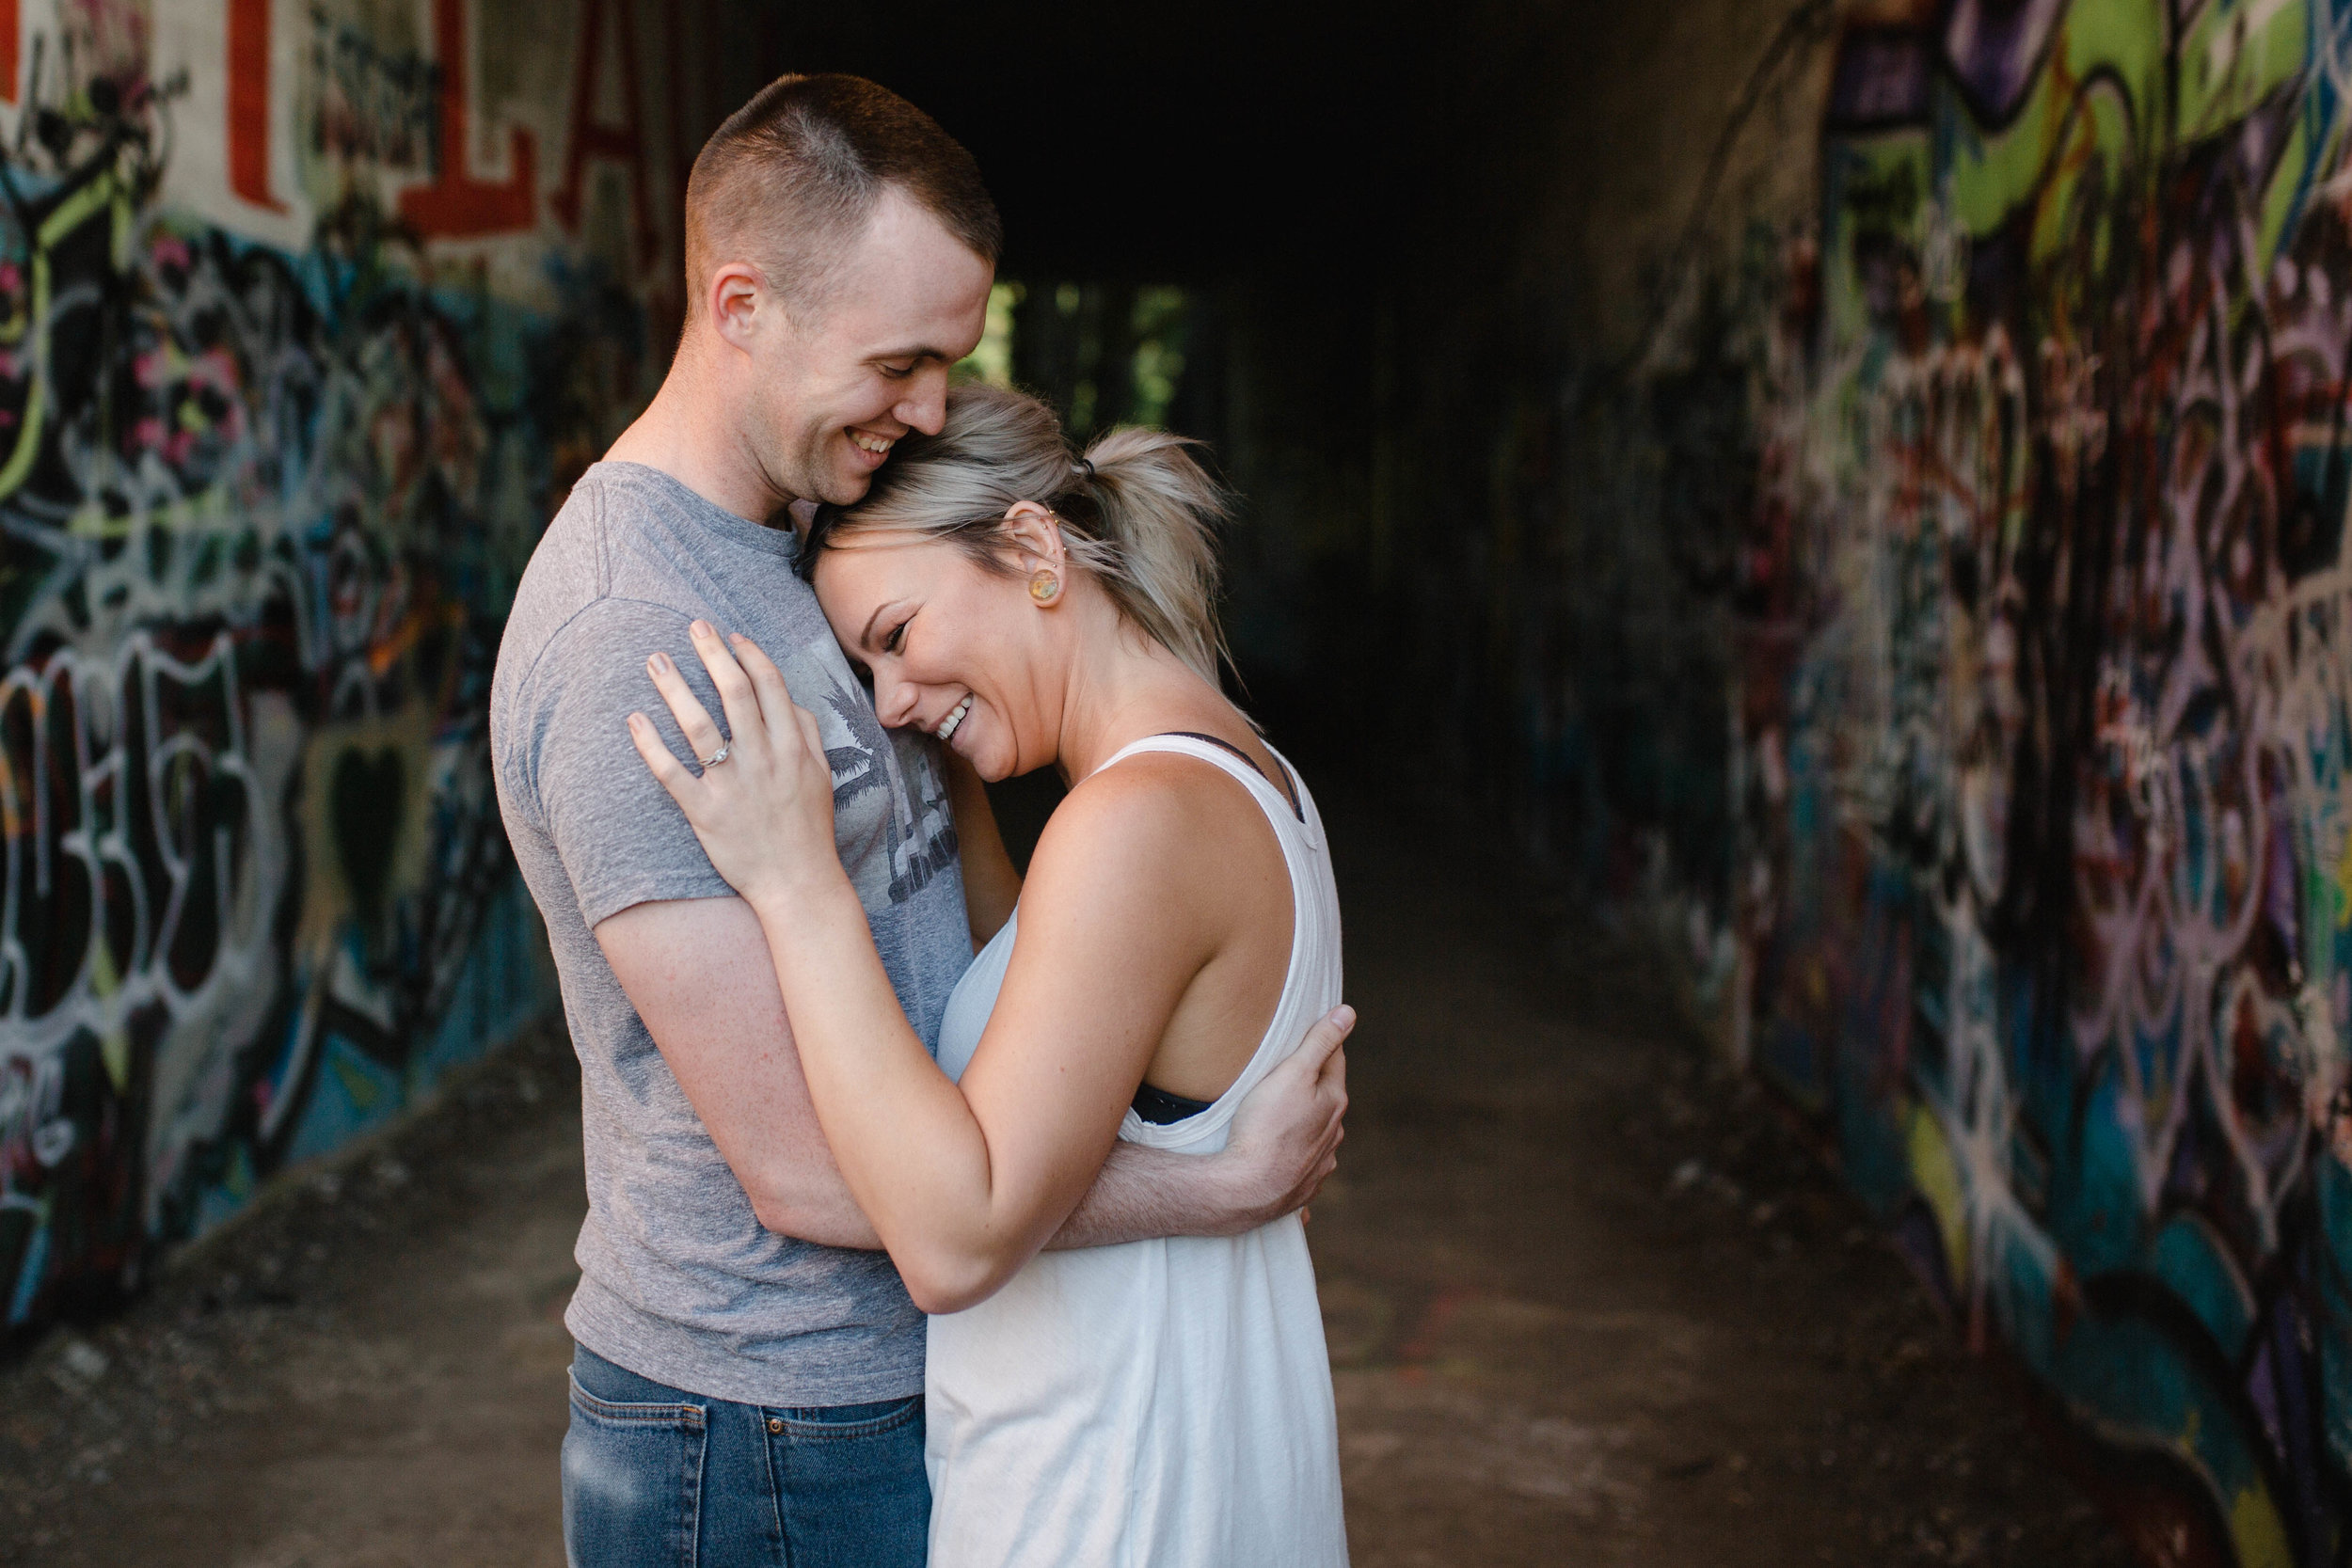 See more of Krysta + Kyle's Dupont couples session